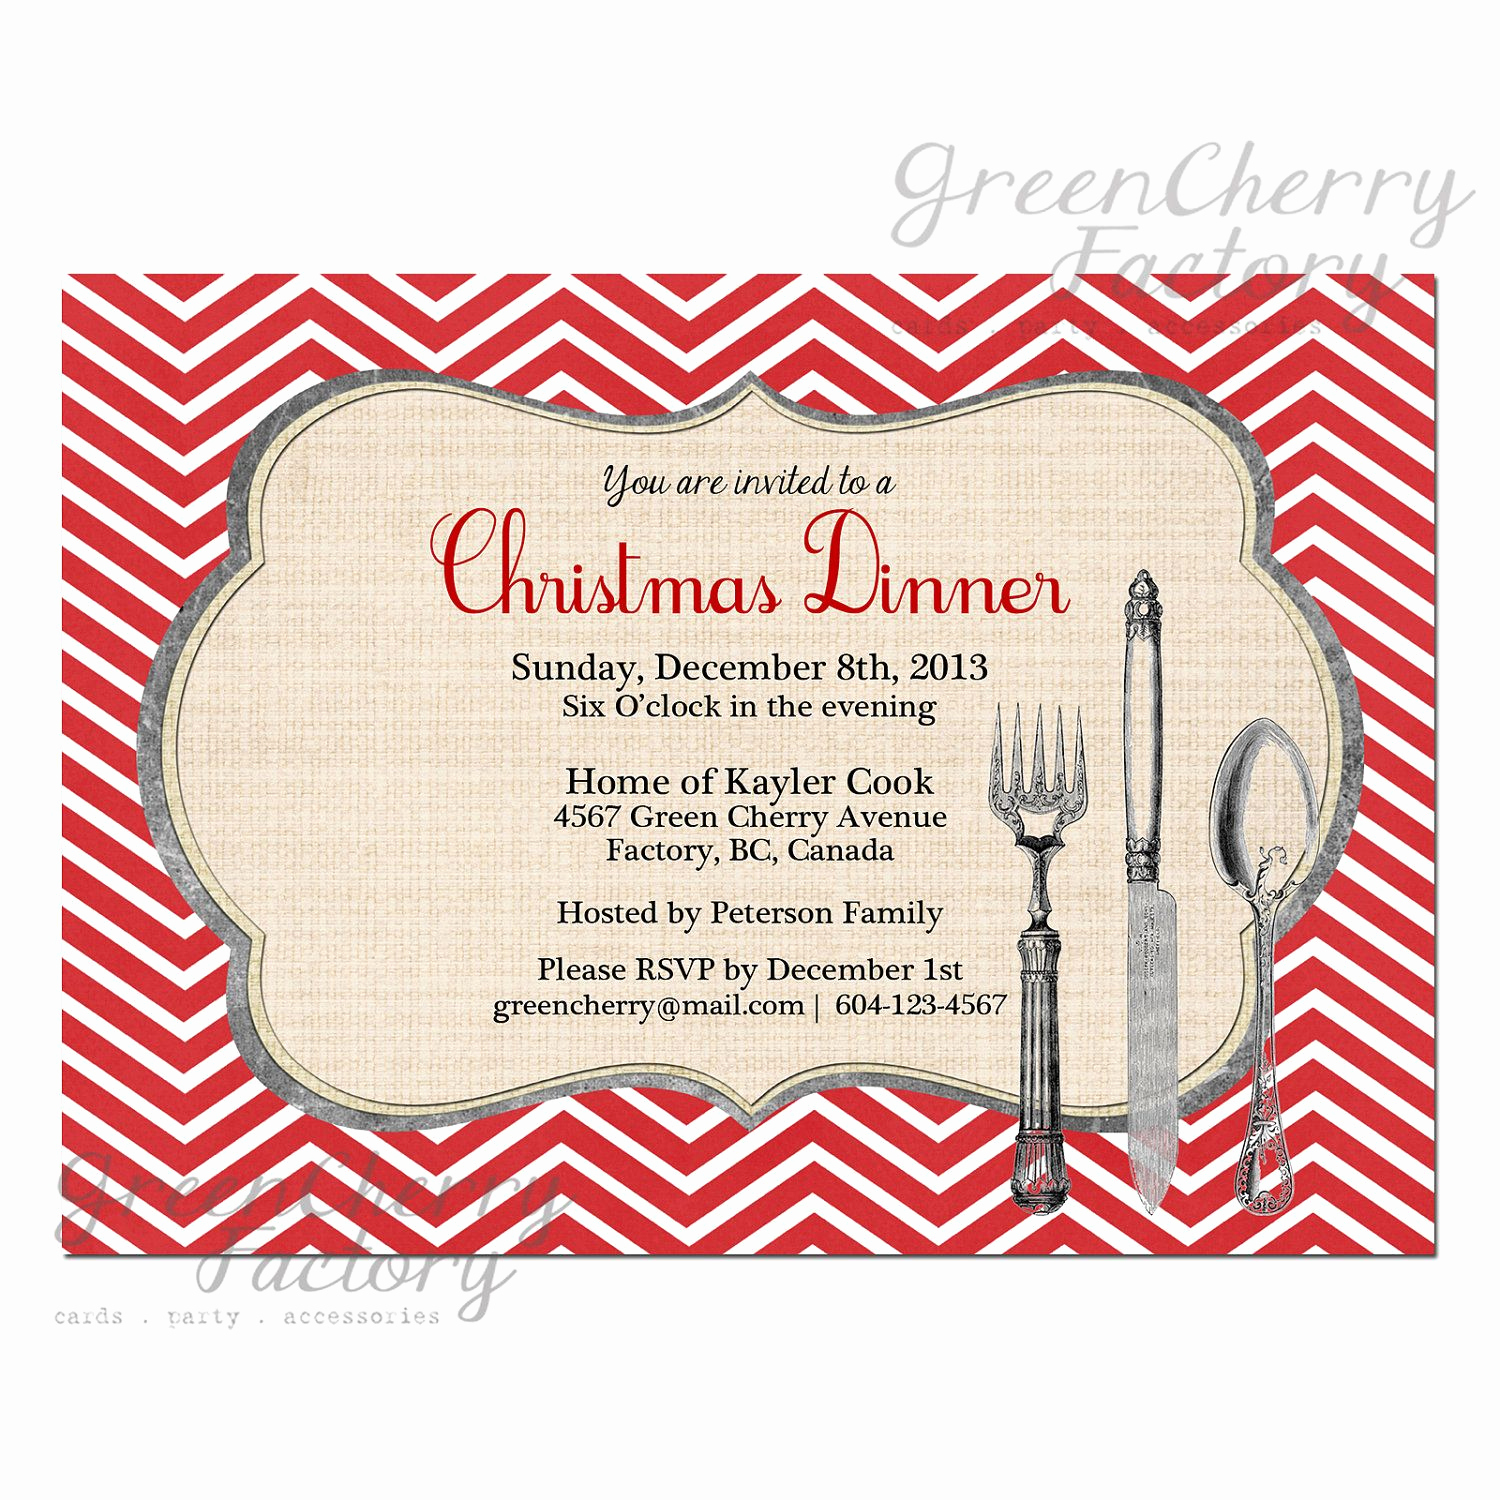 Christmas Dinner Invitation Template New Christmas Party Dinner Invitation Red Chevron Background